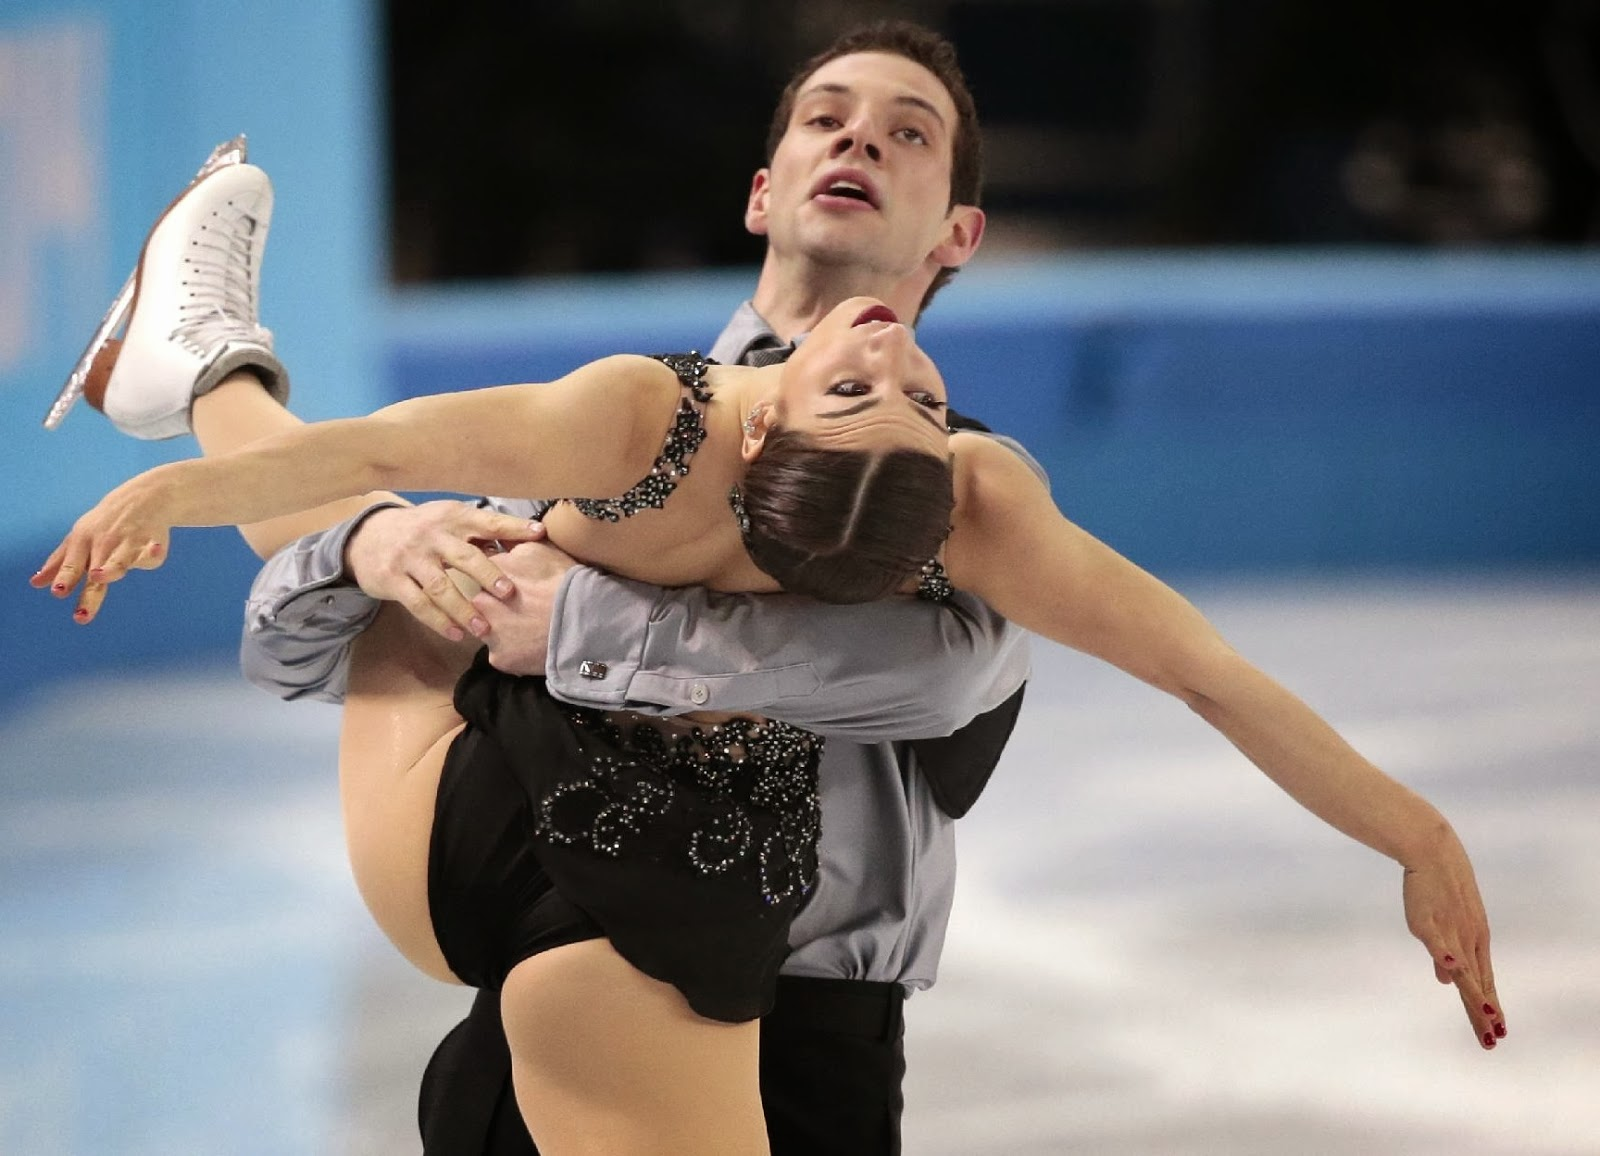 Marissa Castelli and Simon Shnapir, James Bond, Olympics 2014